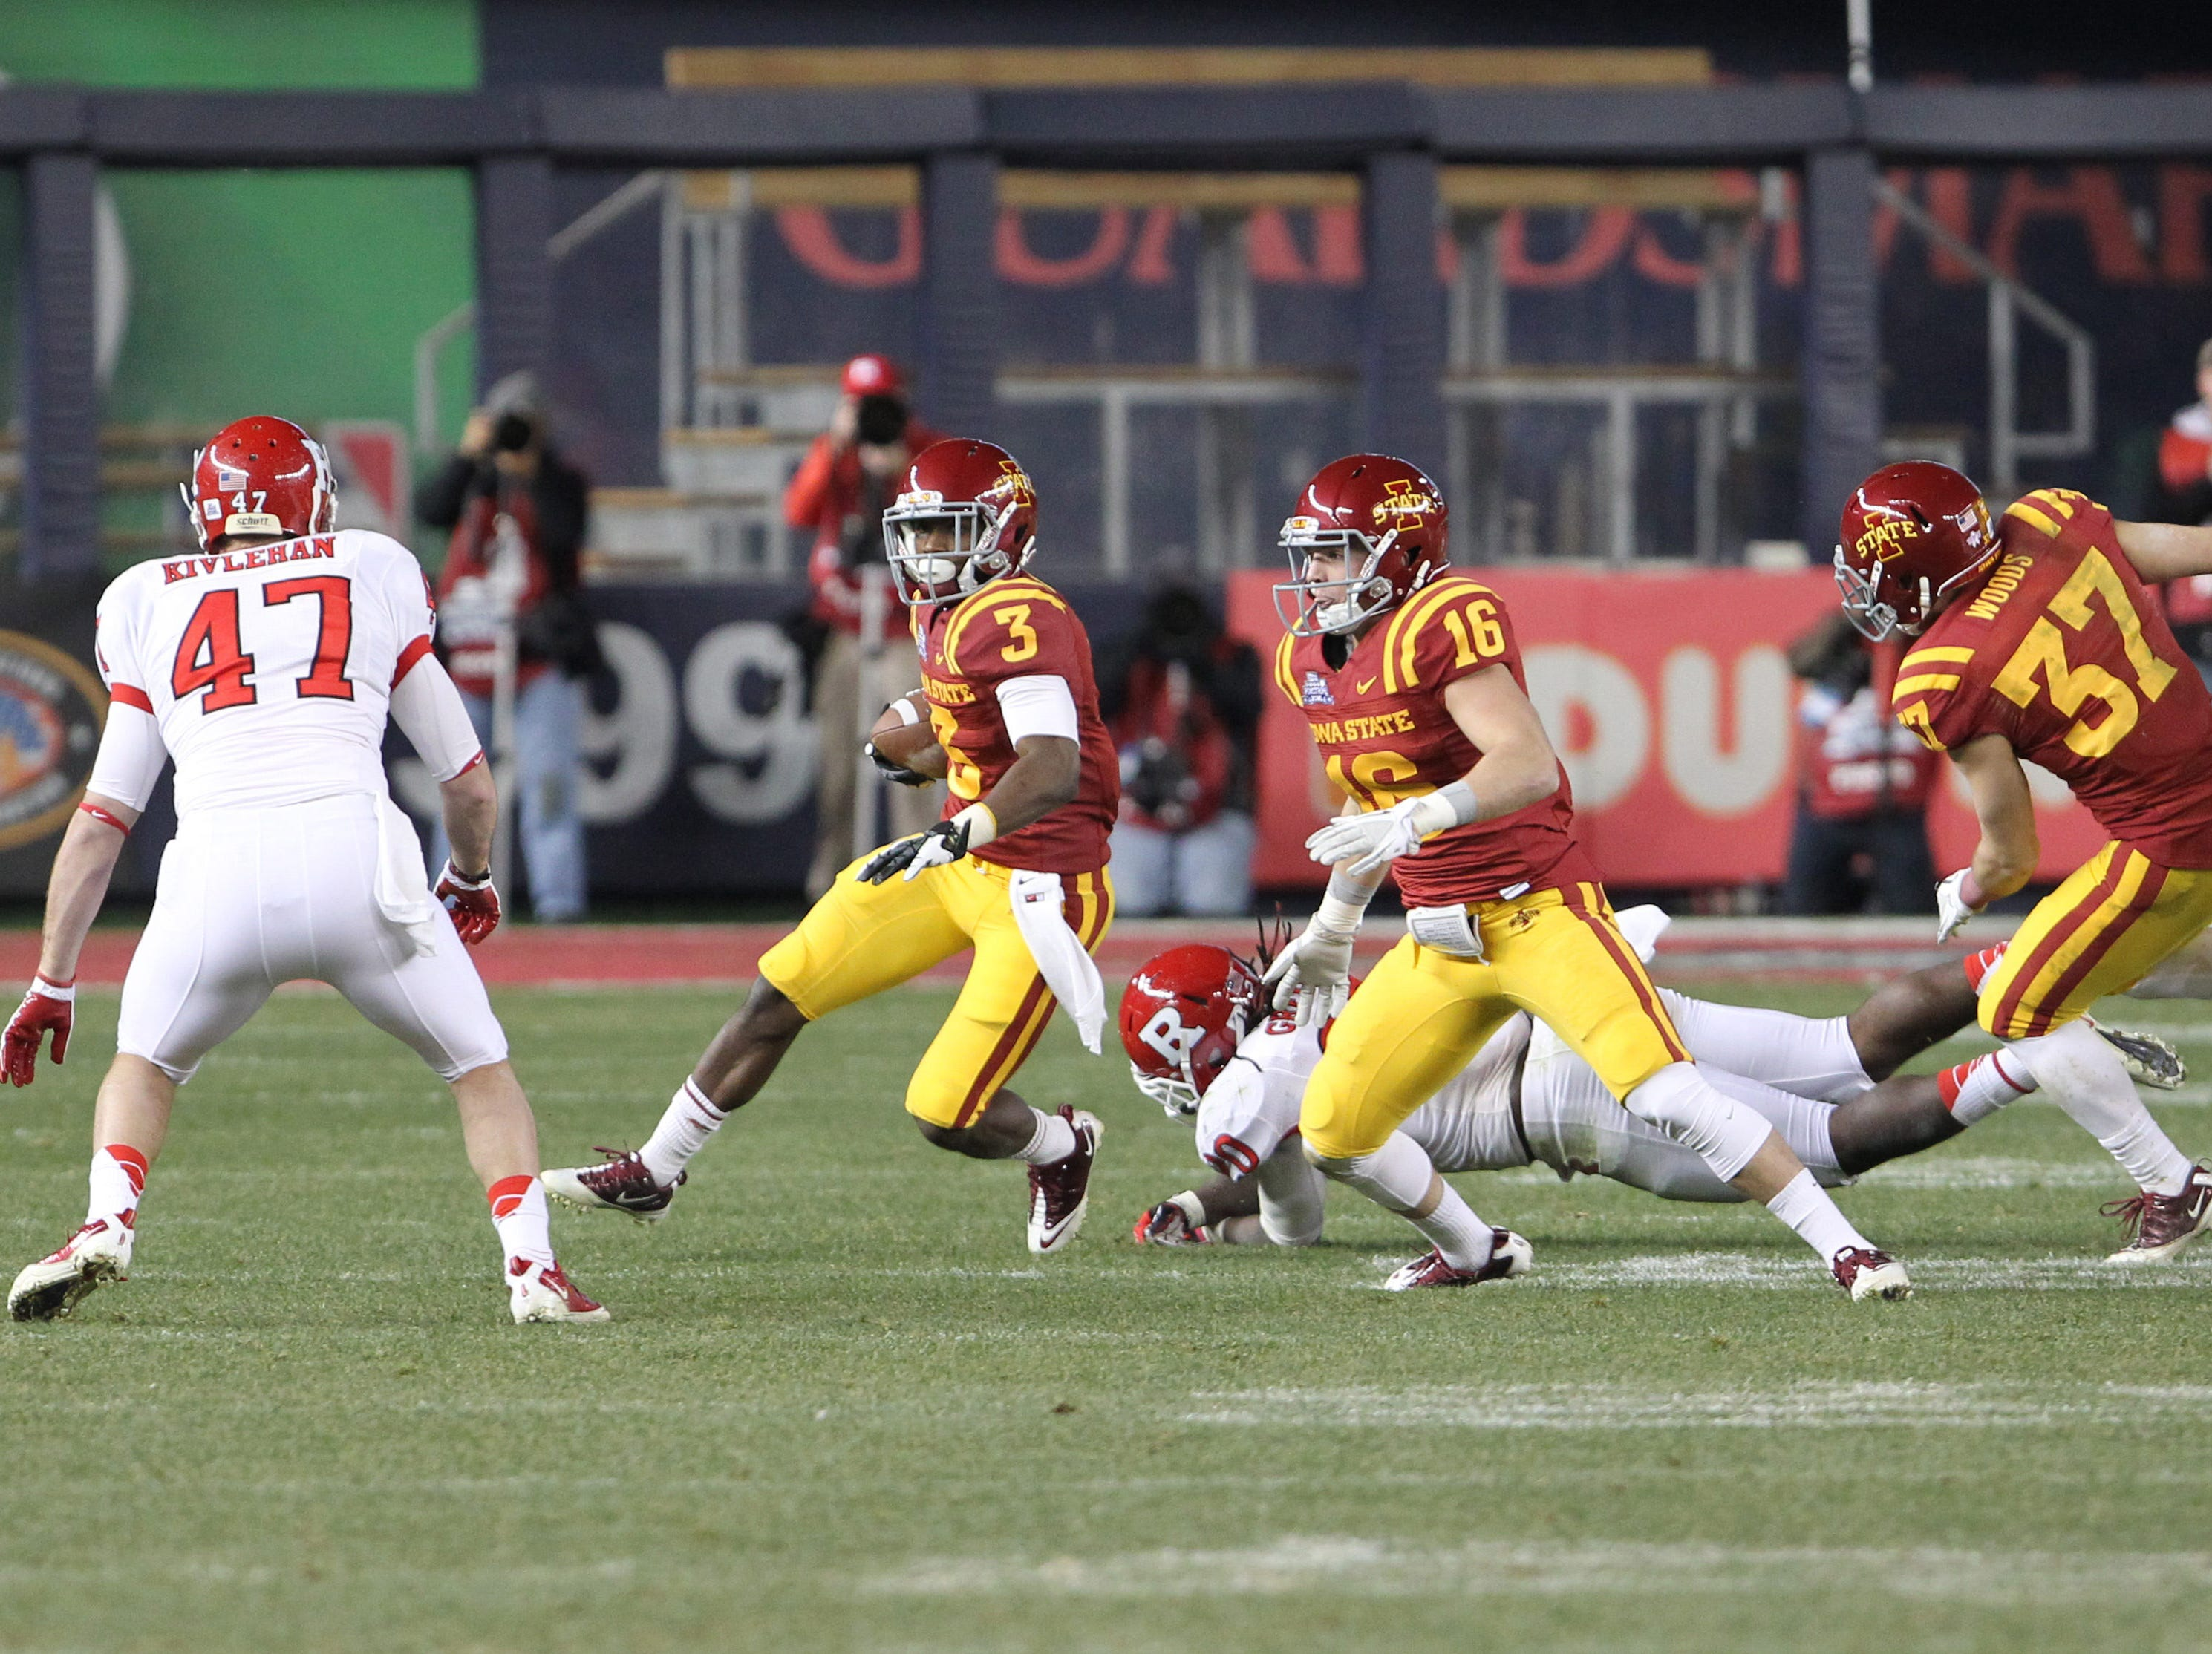 Iowa State Cyclones wide receiver Aaron Horne (3) carries the ball as Rutgers Scarlet Knights defensive back Patrick Kivlehan (47) looks to block during the third quarter of the 2011 Pinstripe Bowl at Yankee Stadium. Rutgers won 27-13.